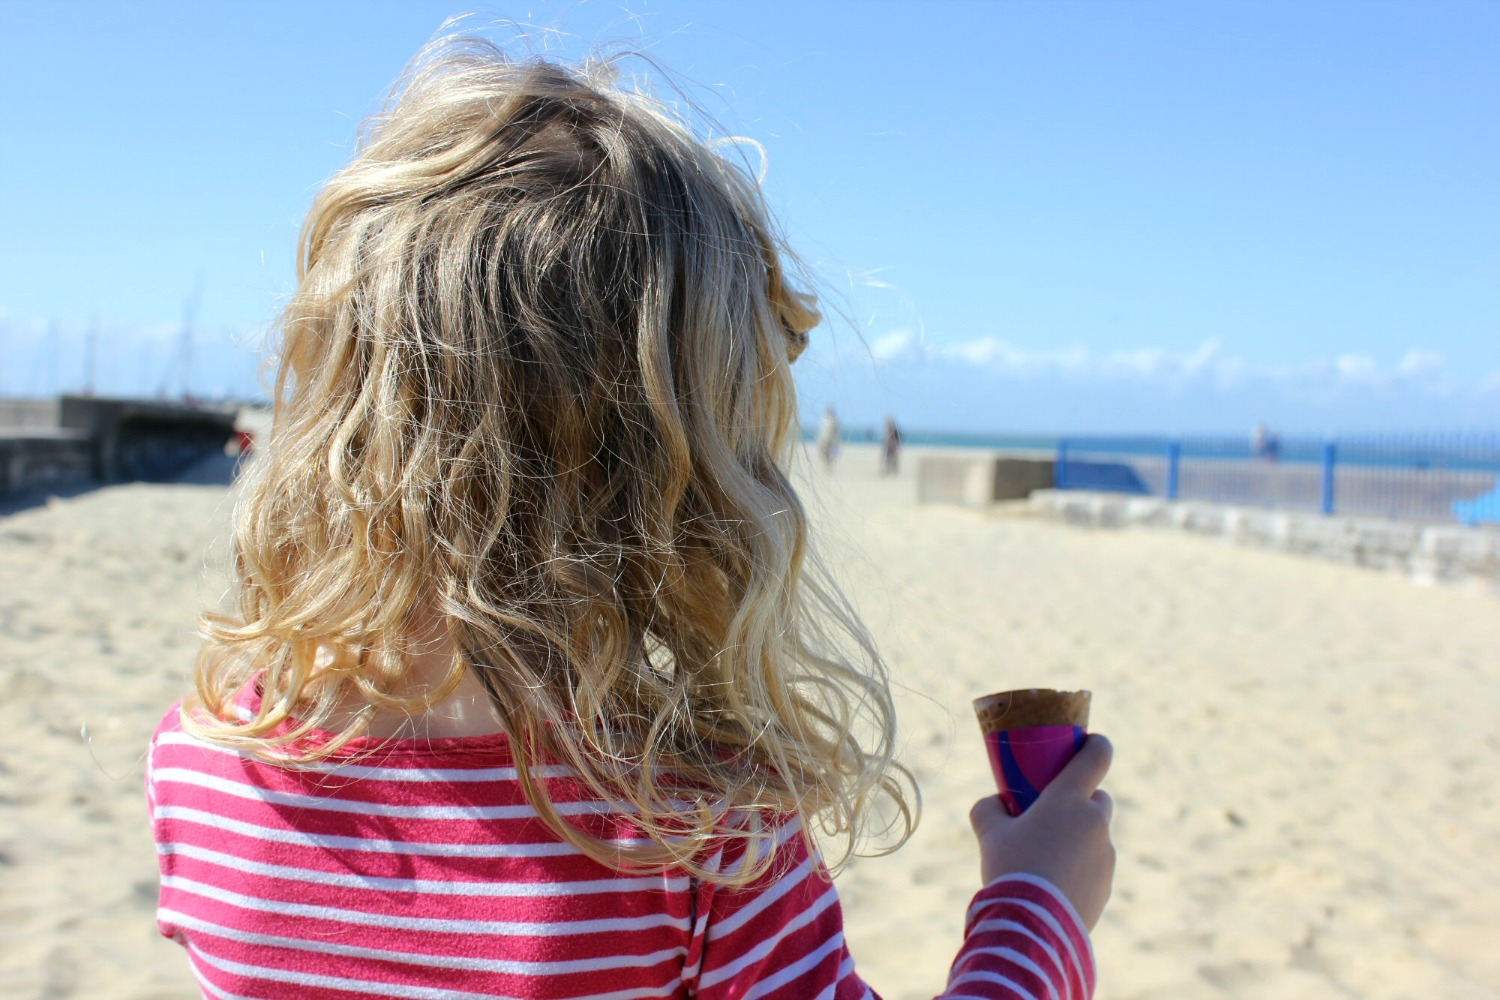 My daughter with her ice cream cone on the beach - discovering the Isle of Wight coast